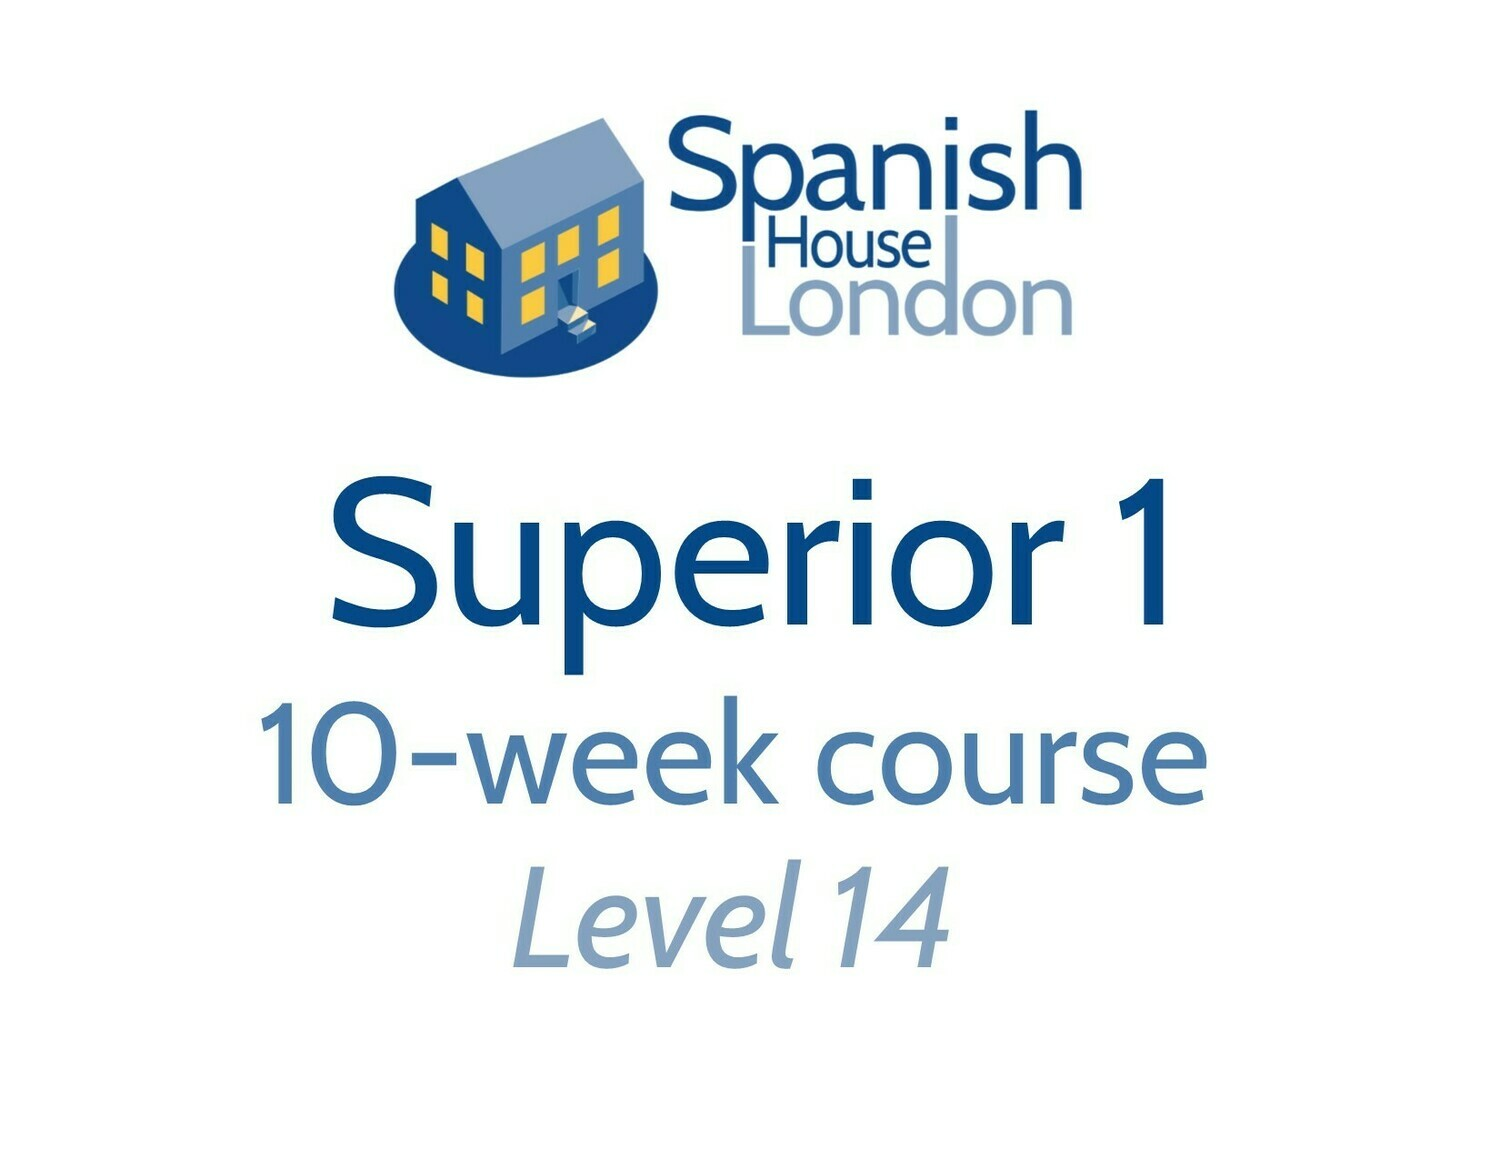 Superior 1 Course starting on 24th March at 7.30pm in Clapham North